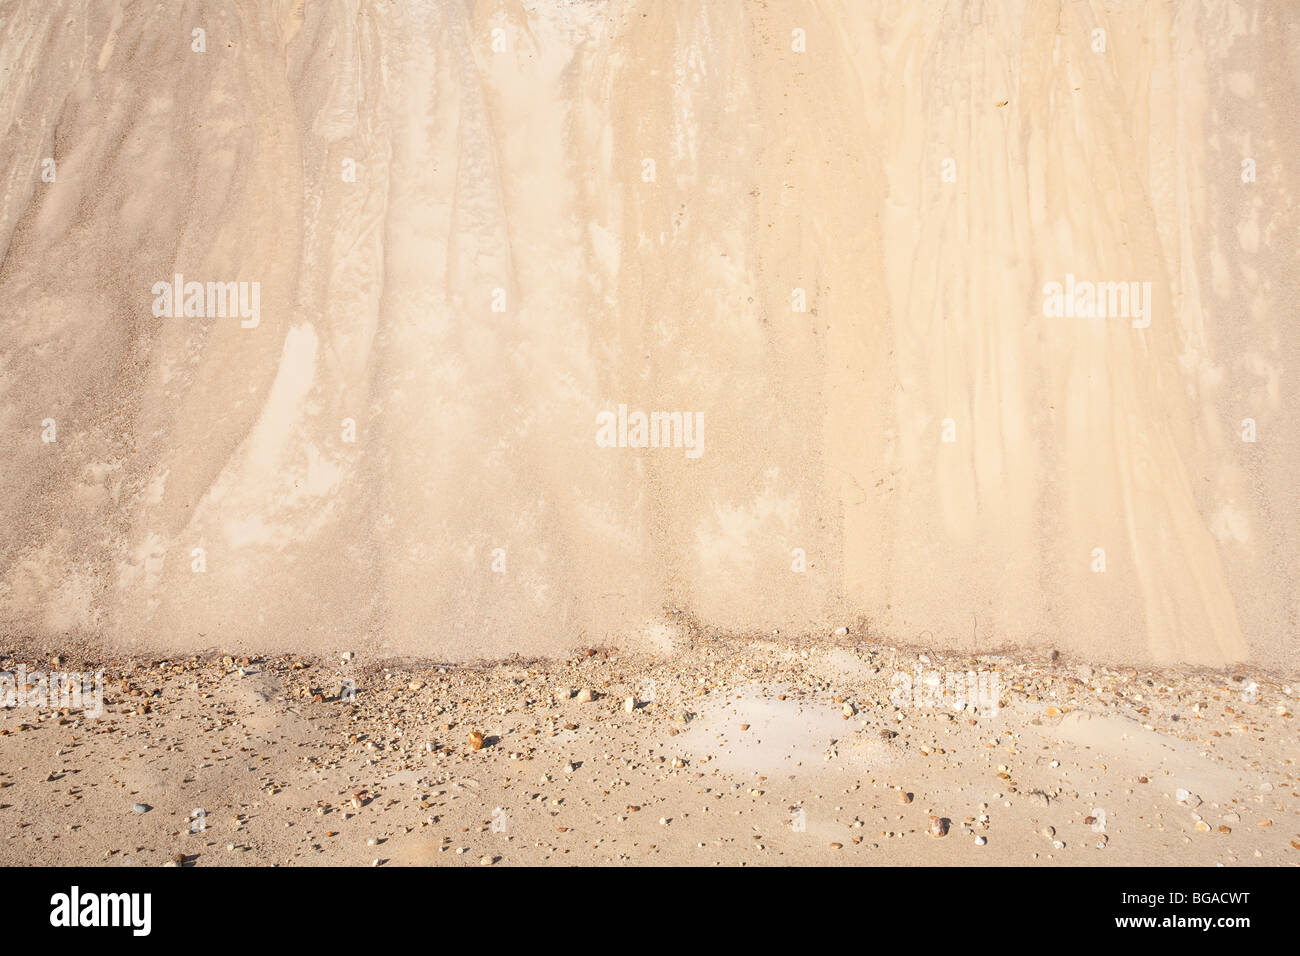 Sand at esker, which was formed at ice age - Stock Image